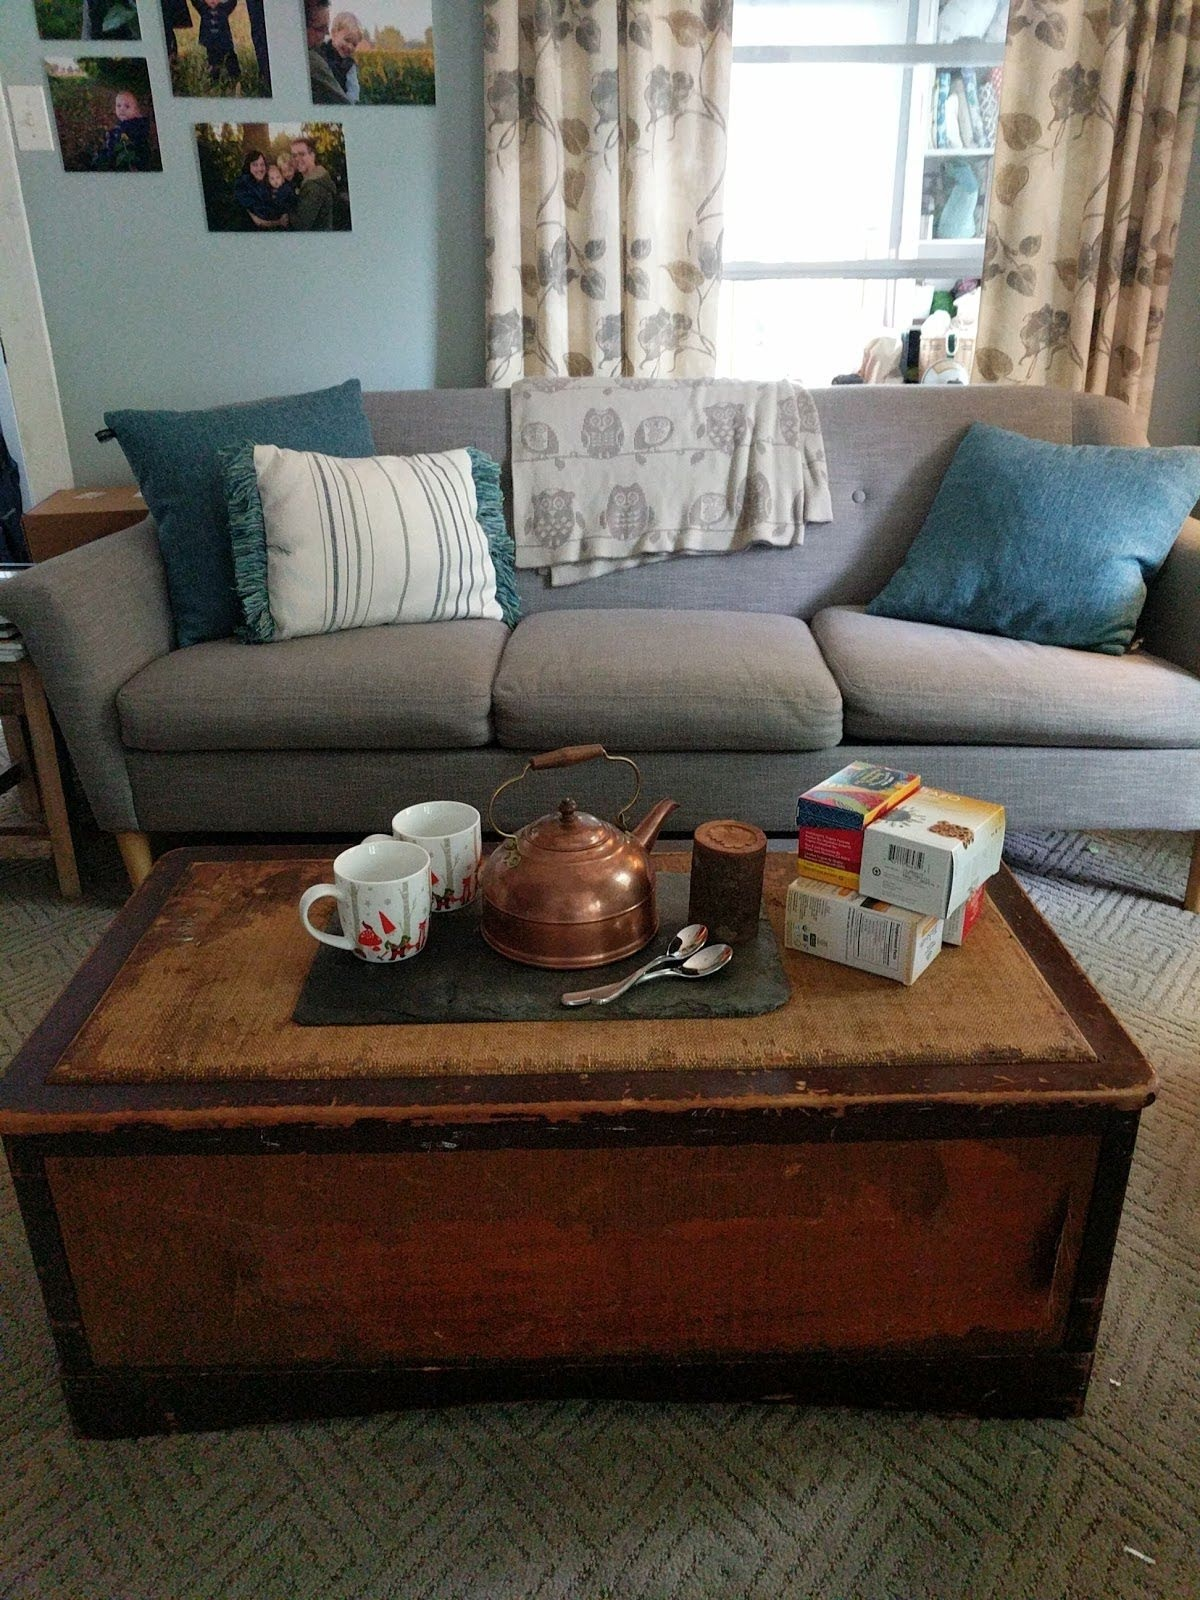 A space for tea and company